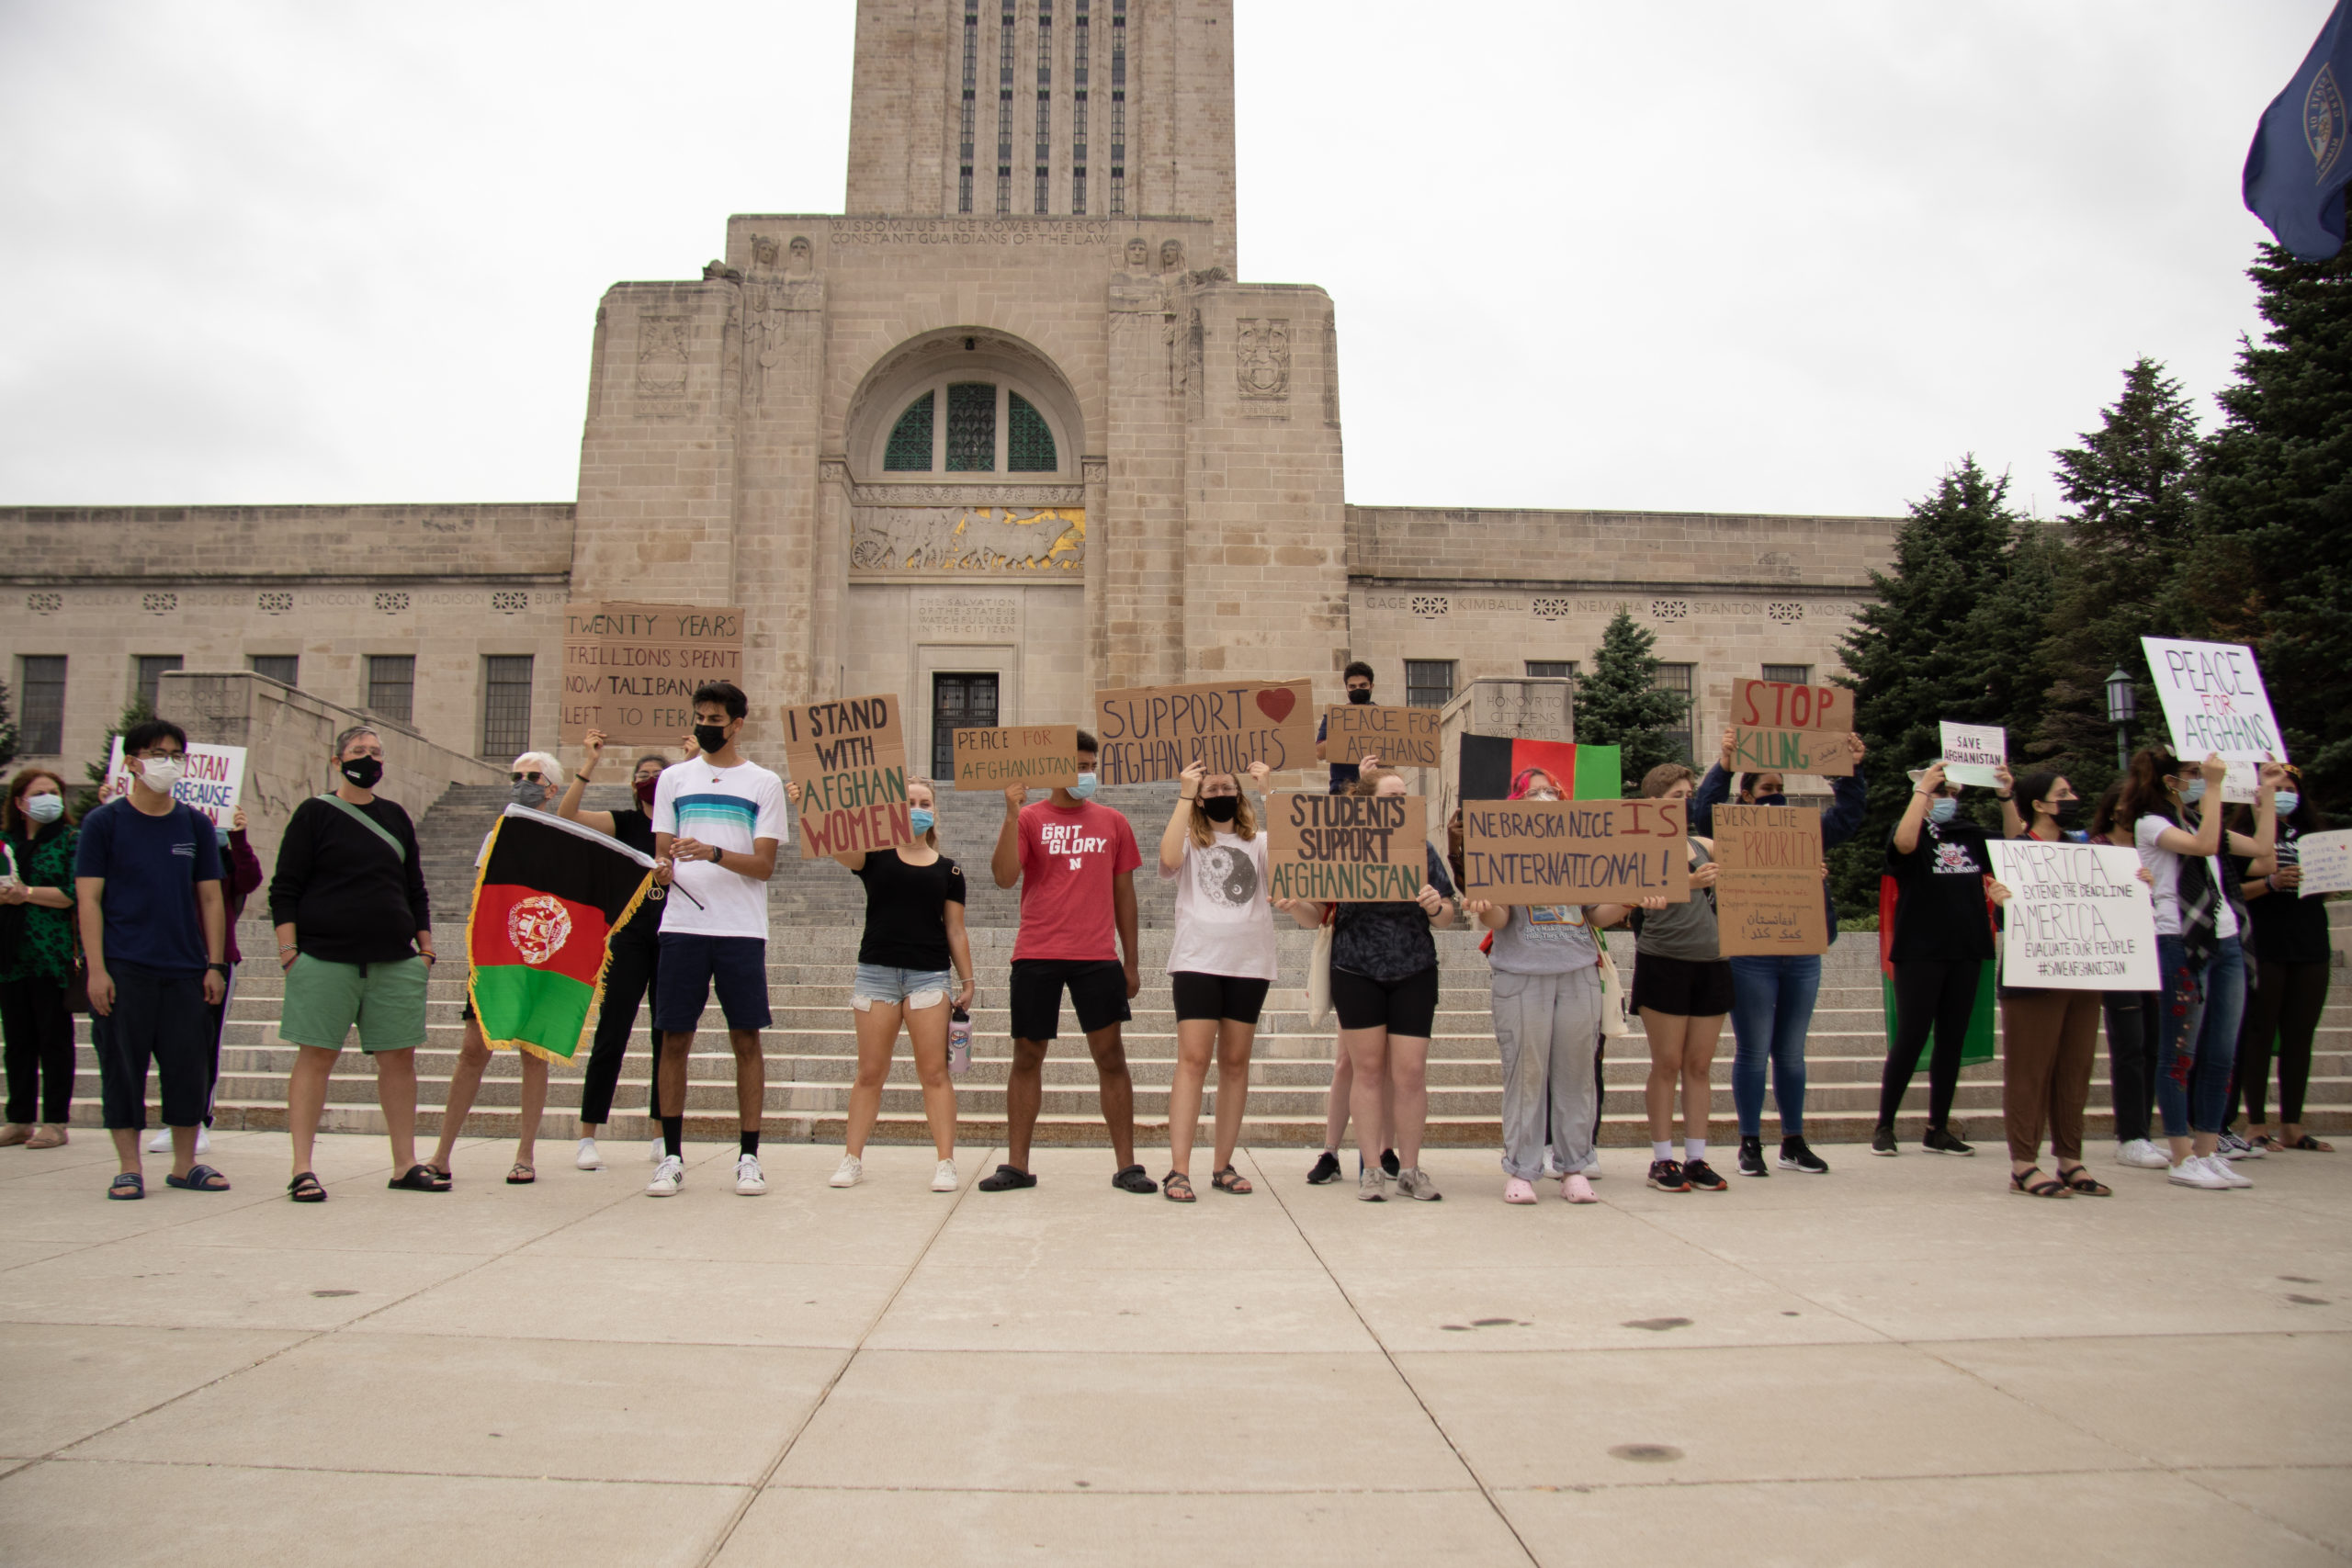 Rally participants stand in front of the Nebraska State Capitol holding up handmade signs facing the road.